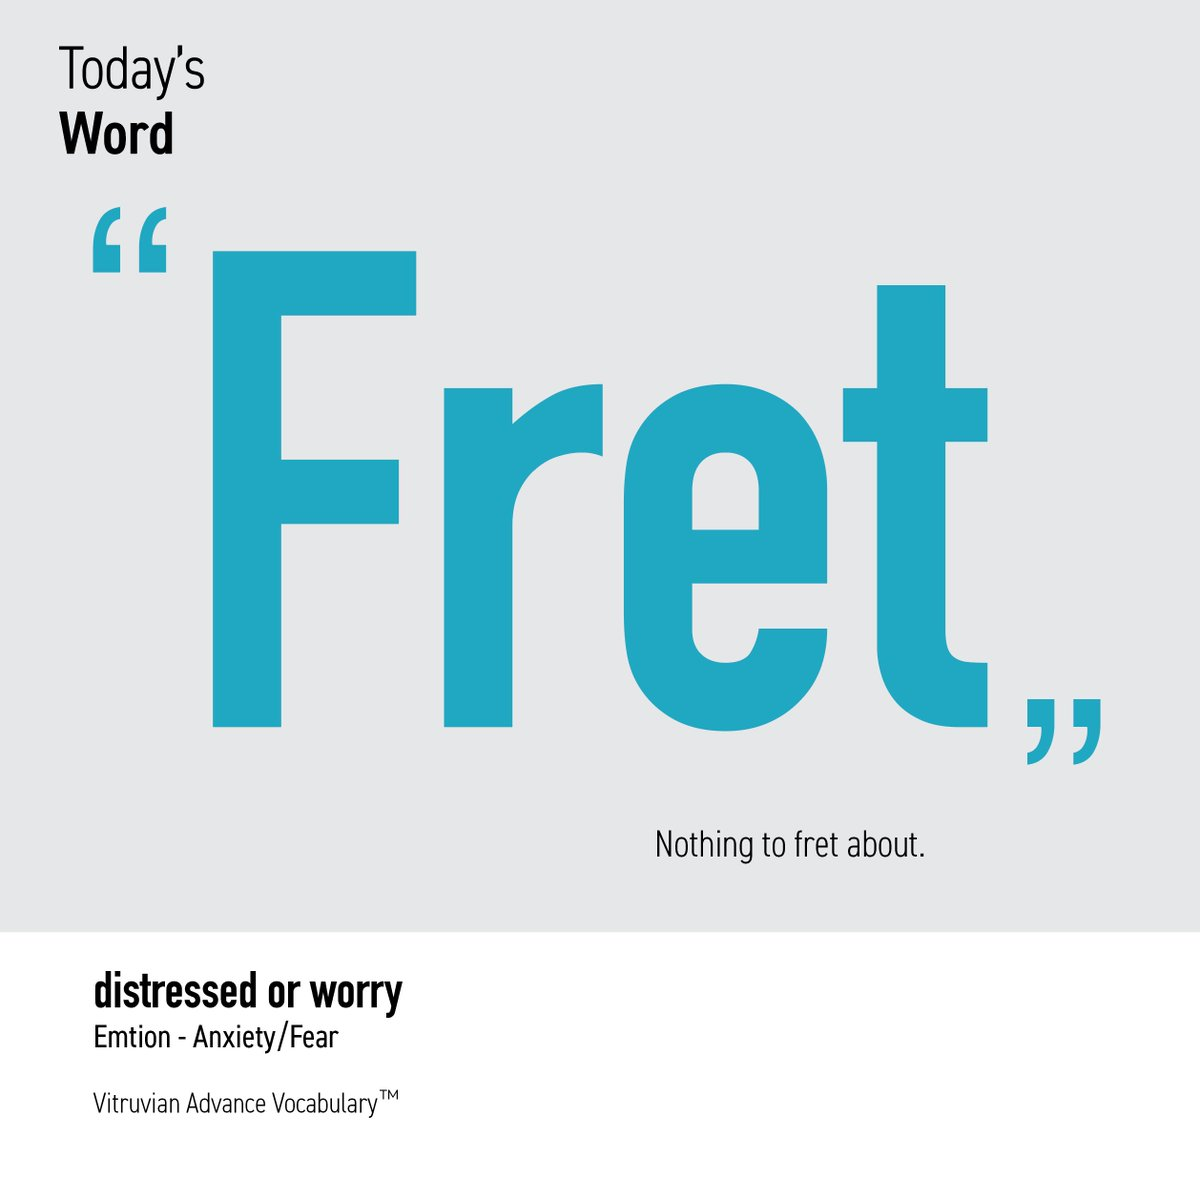 Fret [v.]: be constantly or visibly worried or anxious.  Vitruvian Advance Vocabulary is based on innovative relational matrix and visualized vocabulary learning. #Englishteacher #English #EnglishVocabulary  #SATprep #englishwriting #VitruvianAdvanceVocabulary #MERDI #writingpic.twitter.com/zYCMcTDIvK